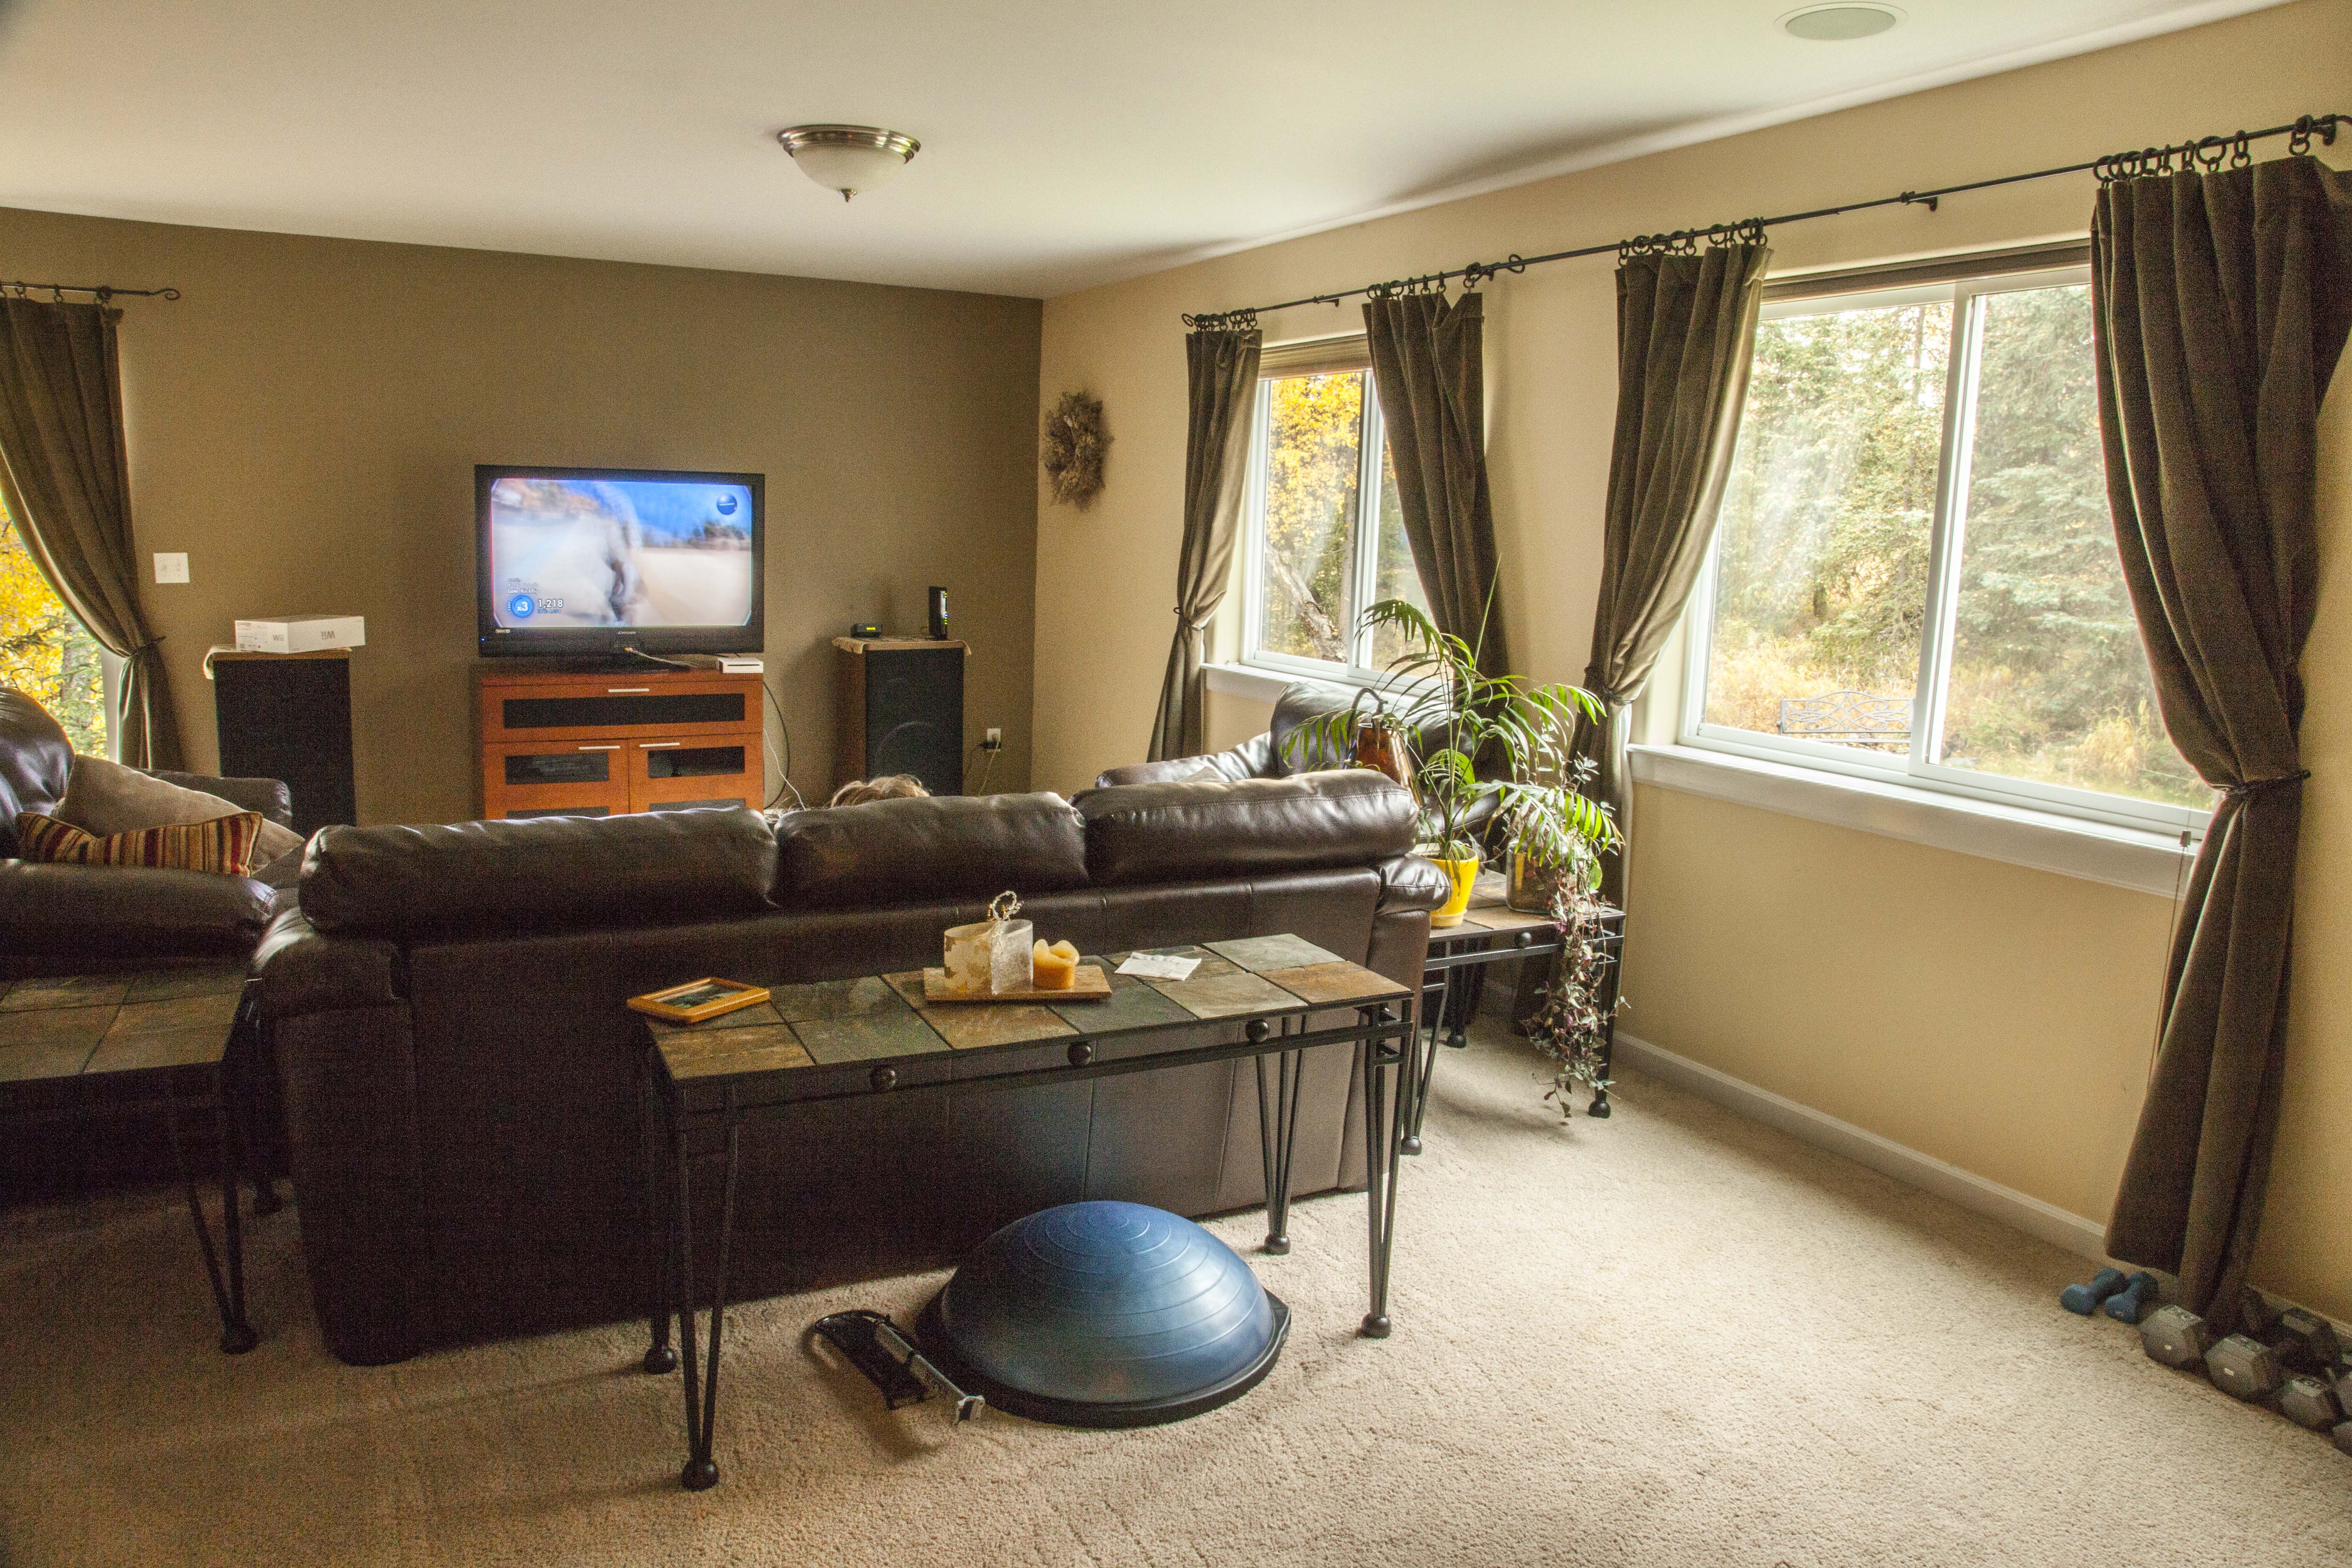 Beautiful, creekside home in South Anchorage - Home Exchange